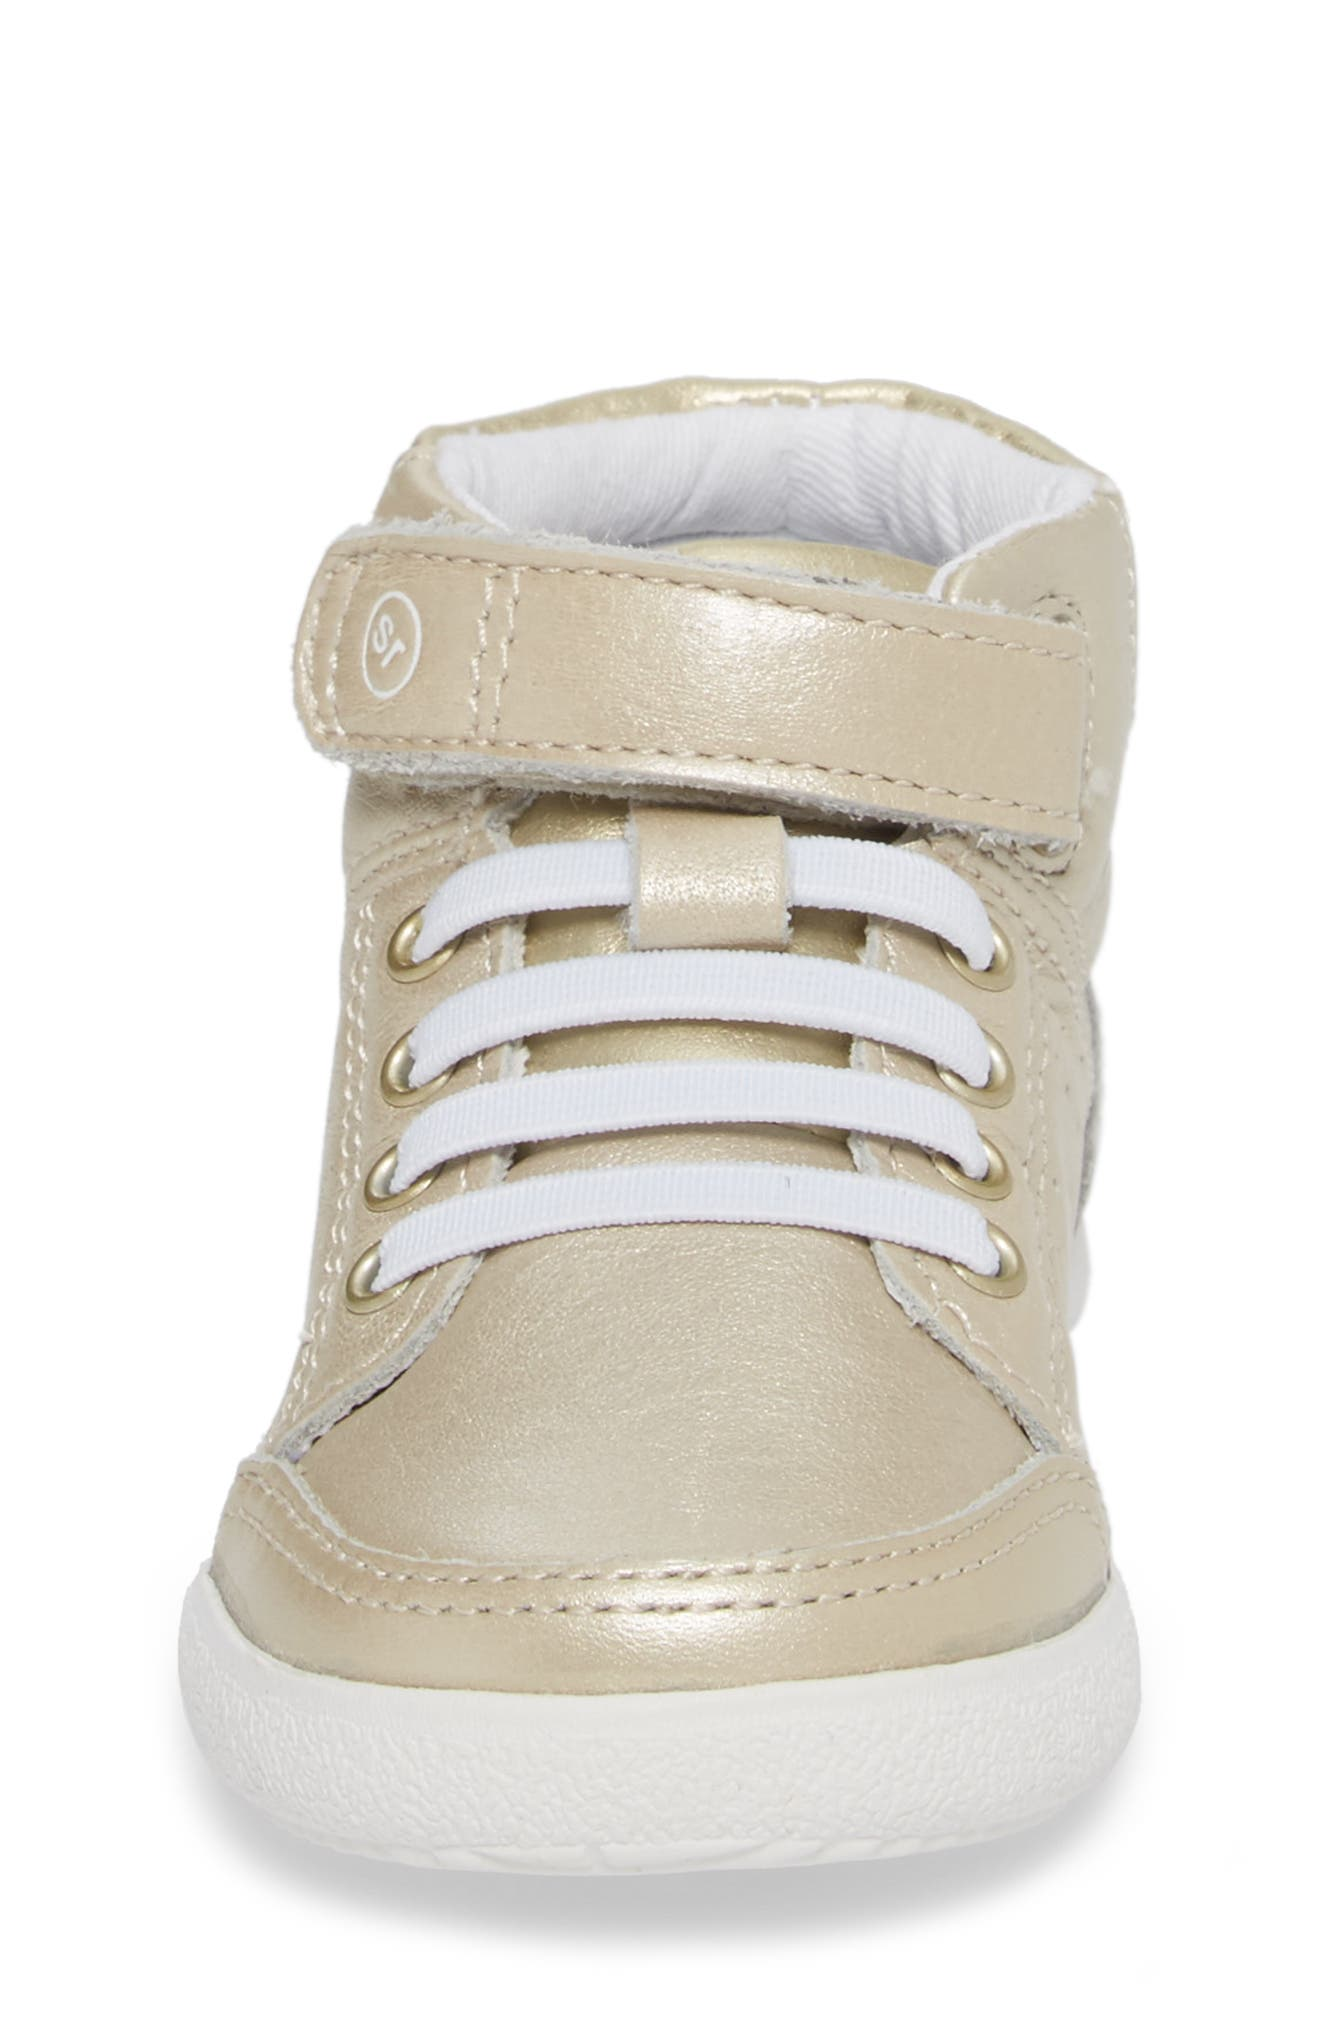 Stone High Top Sneaker,                             Alternate thumbnail 4, color,                             Champagne Leather